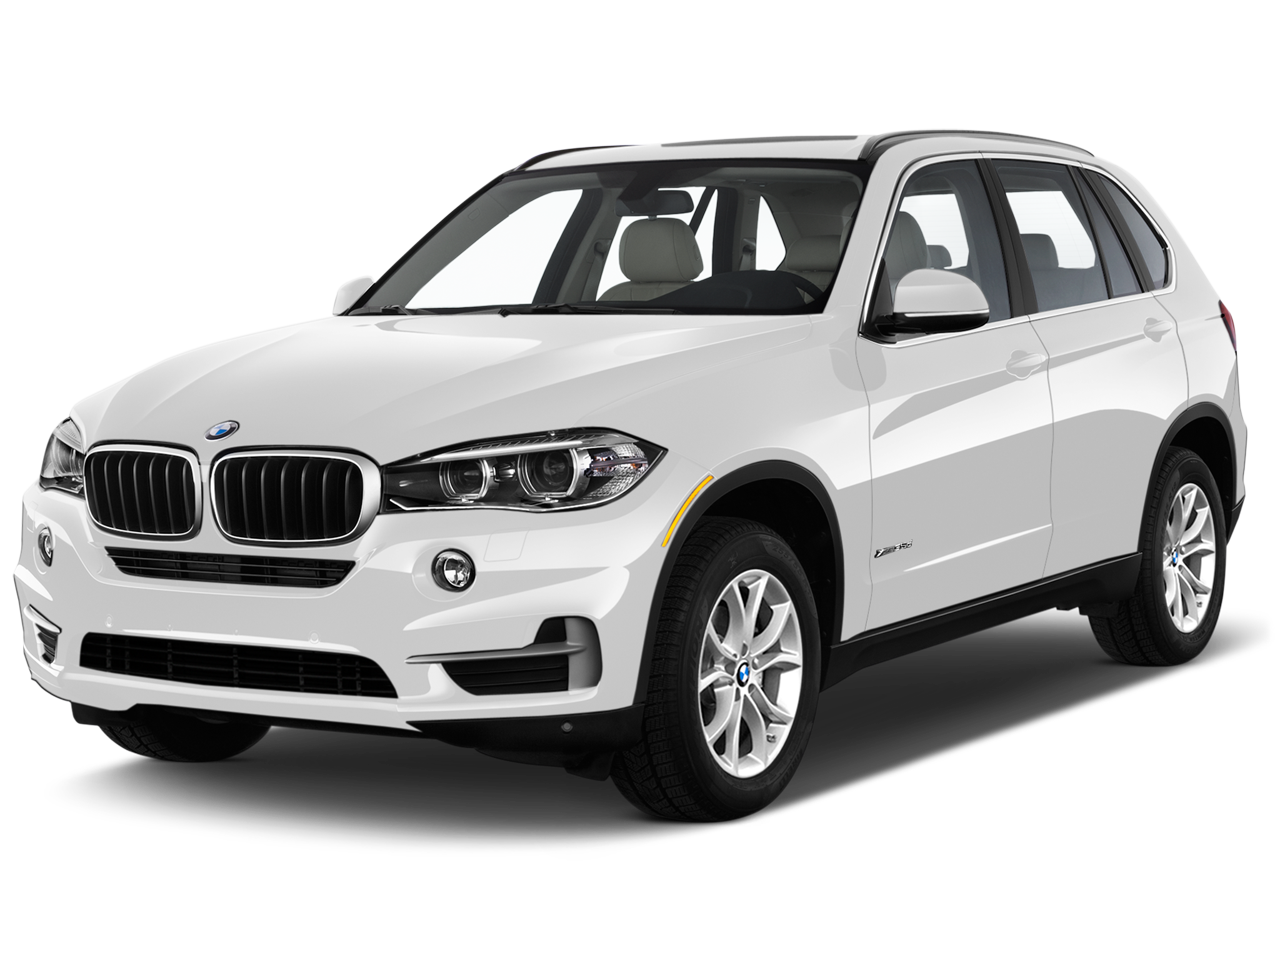 New 2018 Bmw X5 Xdrive35i West Palm Beach Fl Near